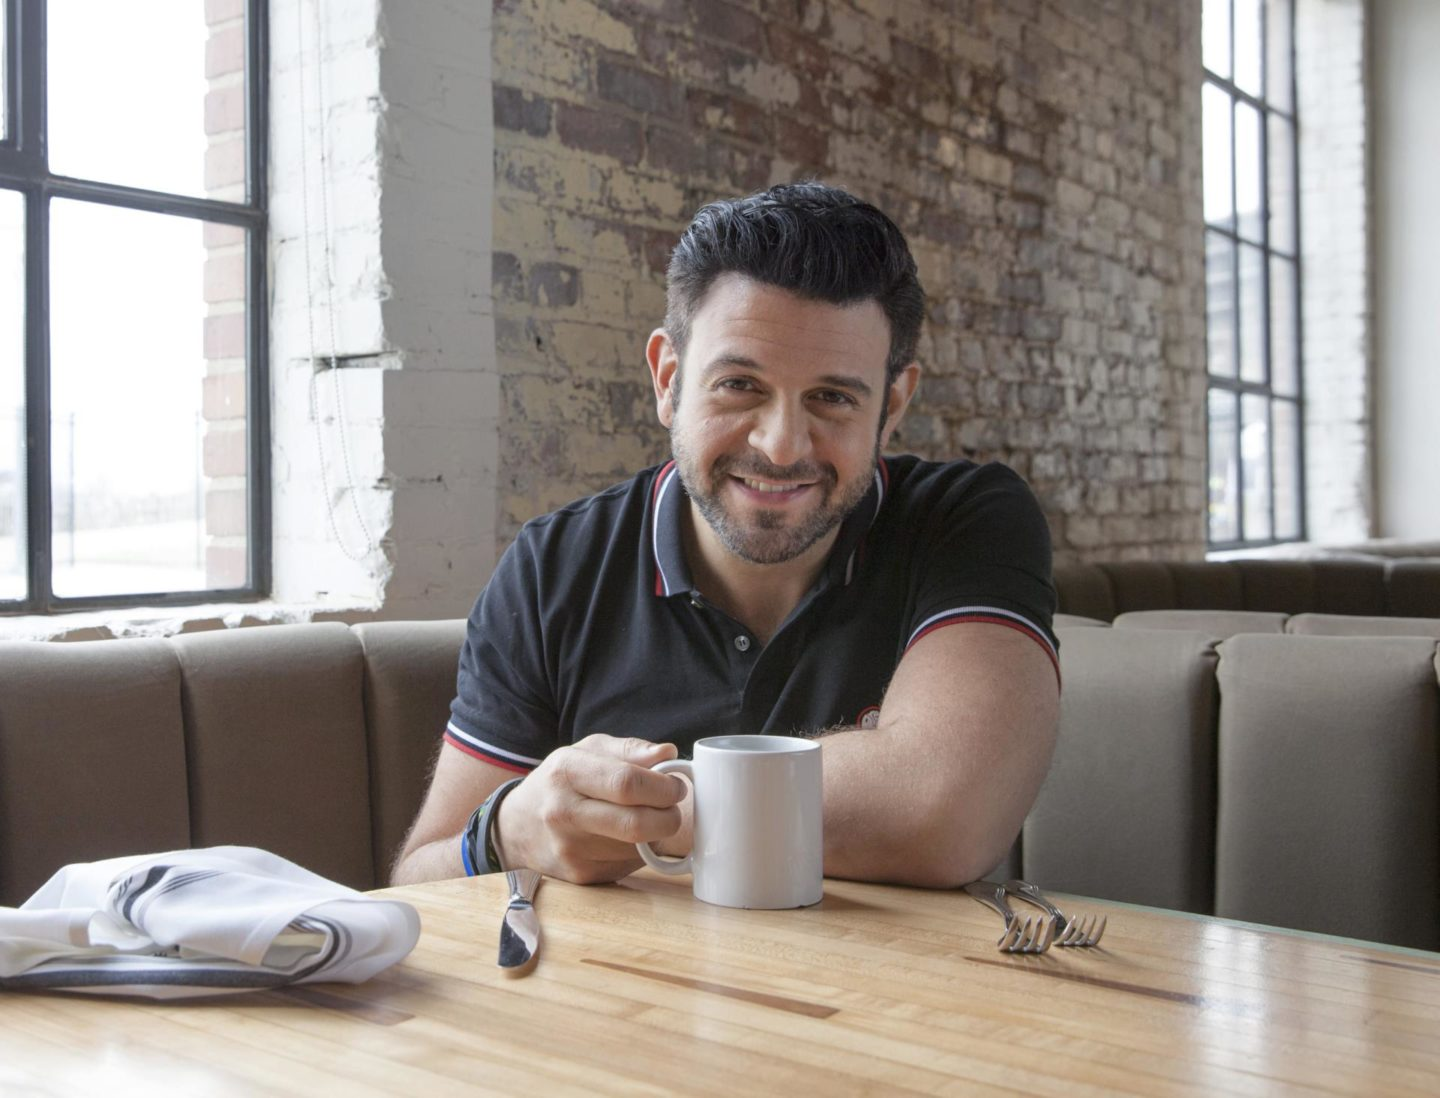 ADAM RICHMAN: MY DIET IS NONE OF YOUR BUSINESS